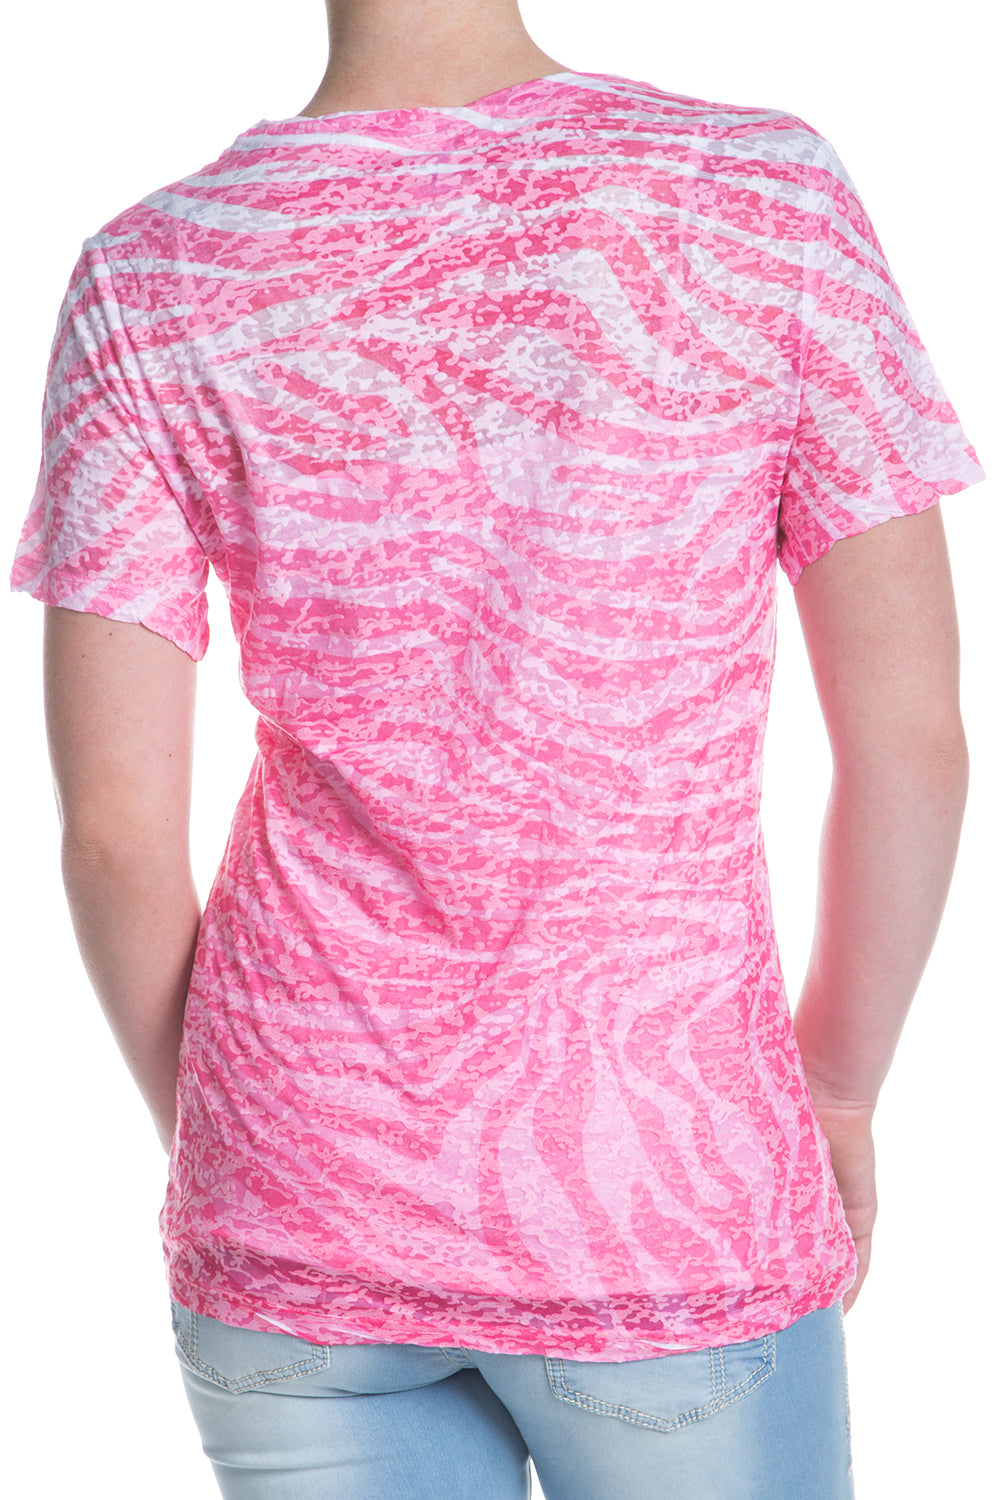 Type 1 Tiger Stripes Cute-T in Pink